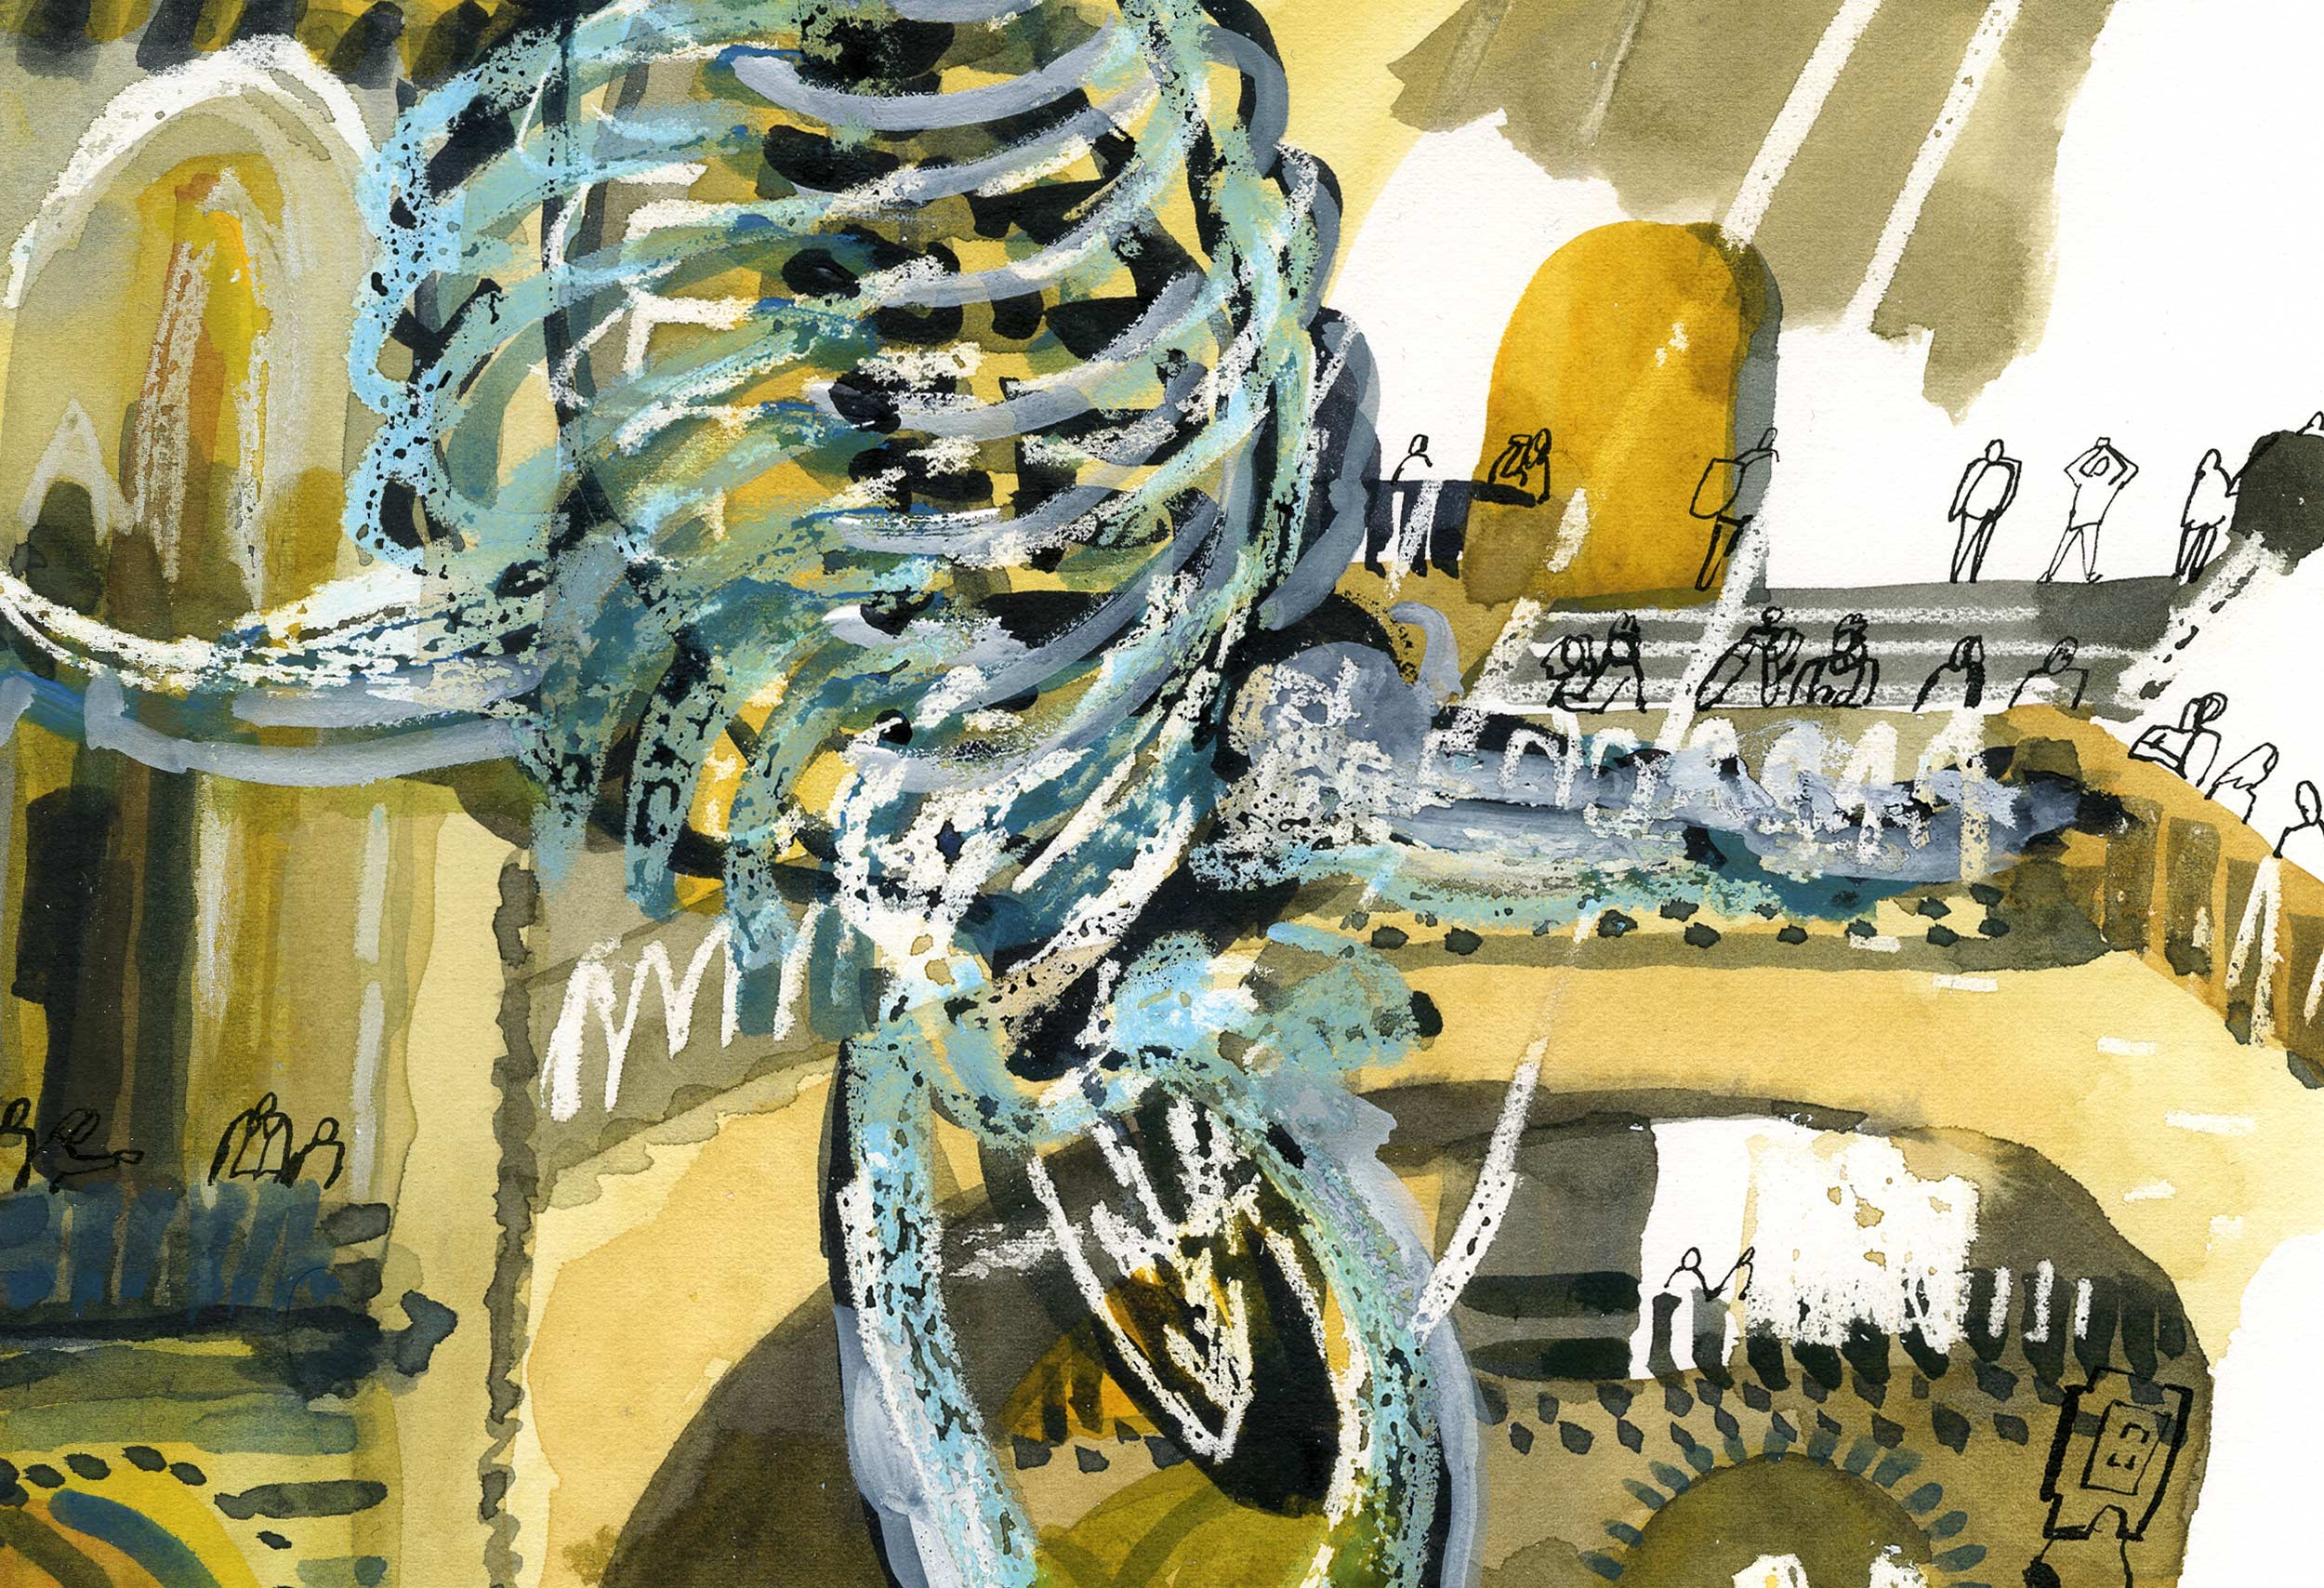 Blue whale, Natural History Museum by James Oses, image 2